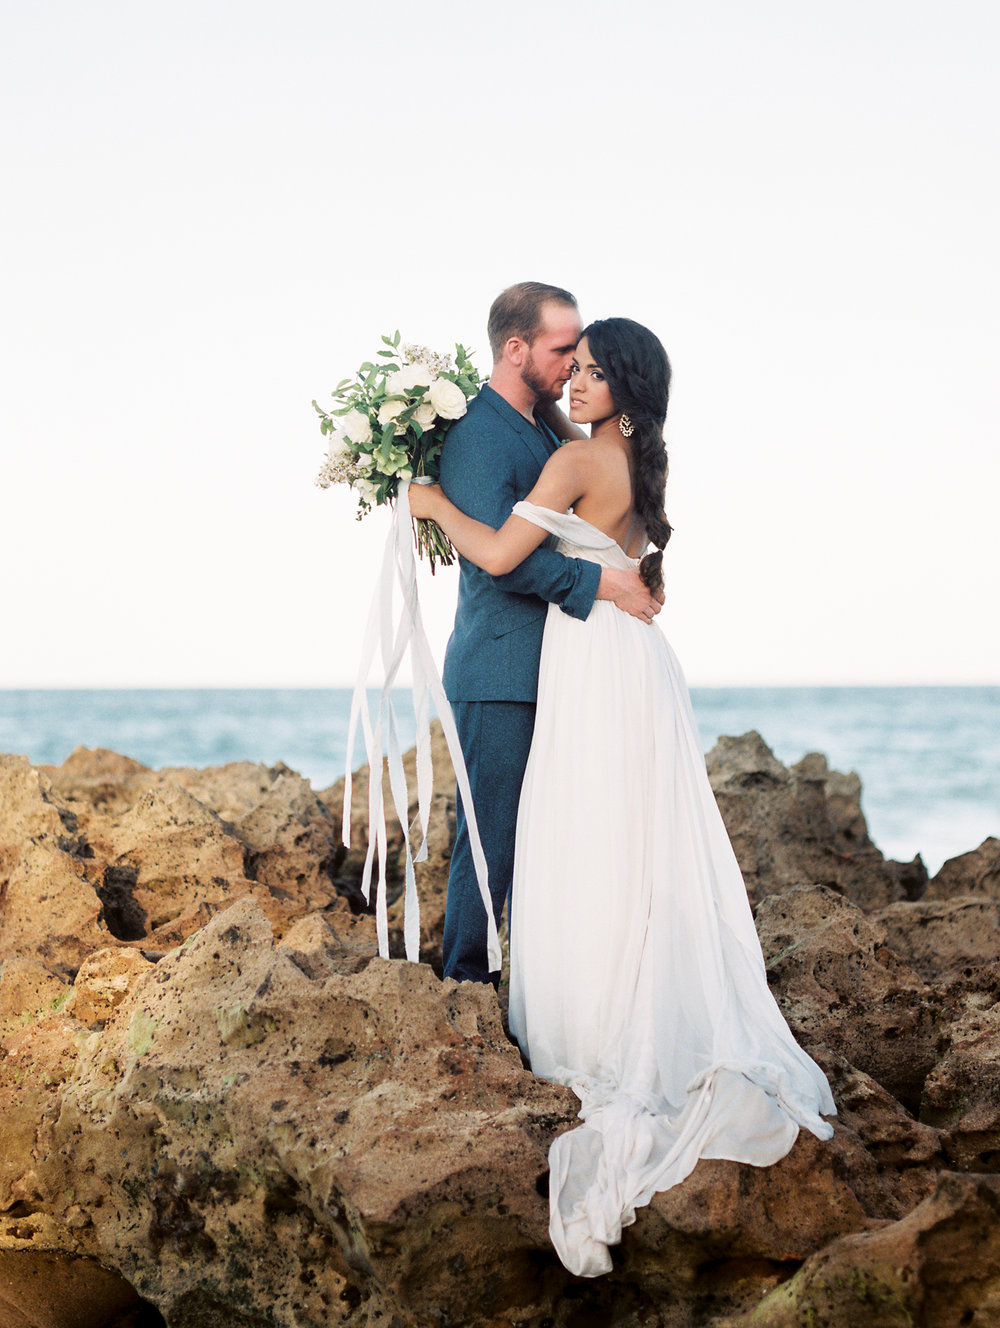 coral cove, jupiter beach FL, palm beach wedding photos, bride and groom on rocks on beach photos